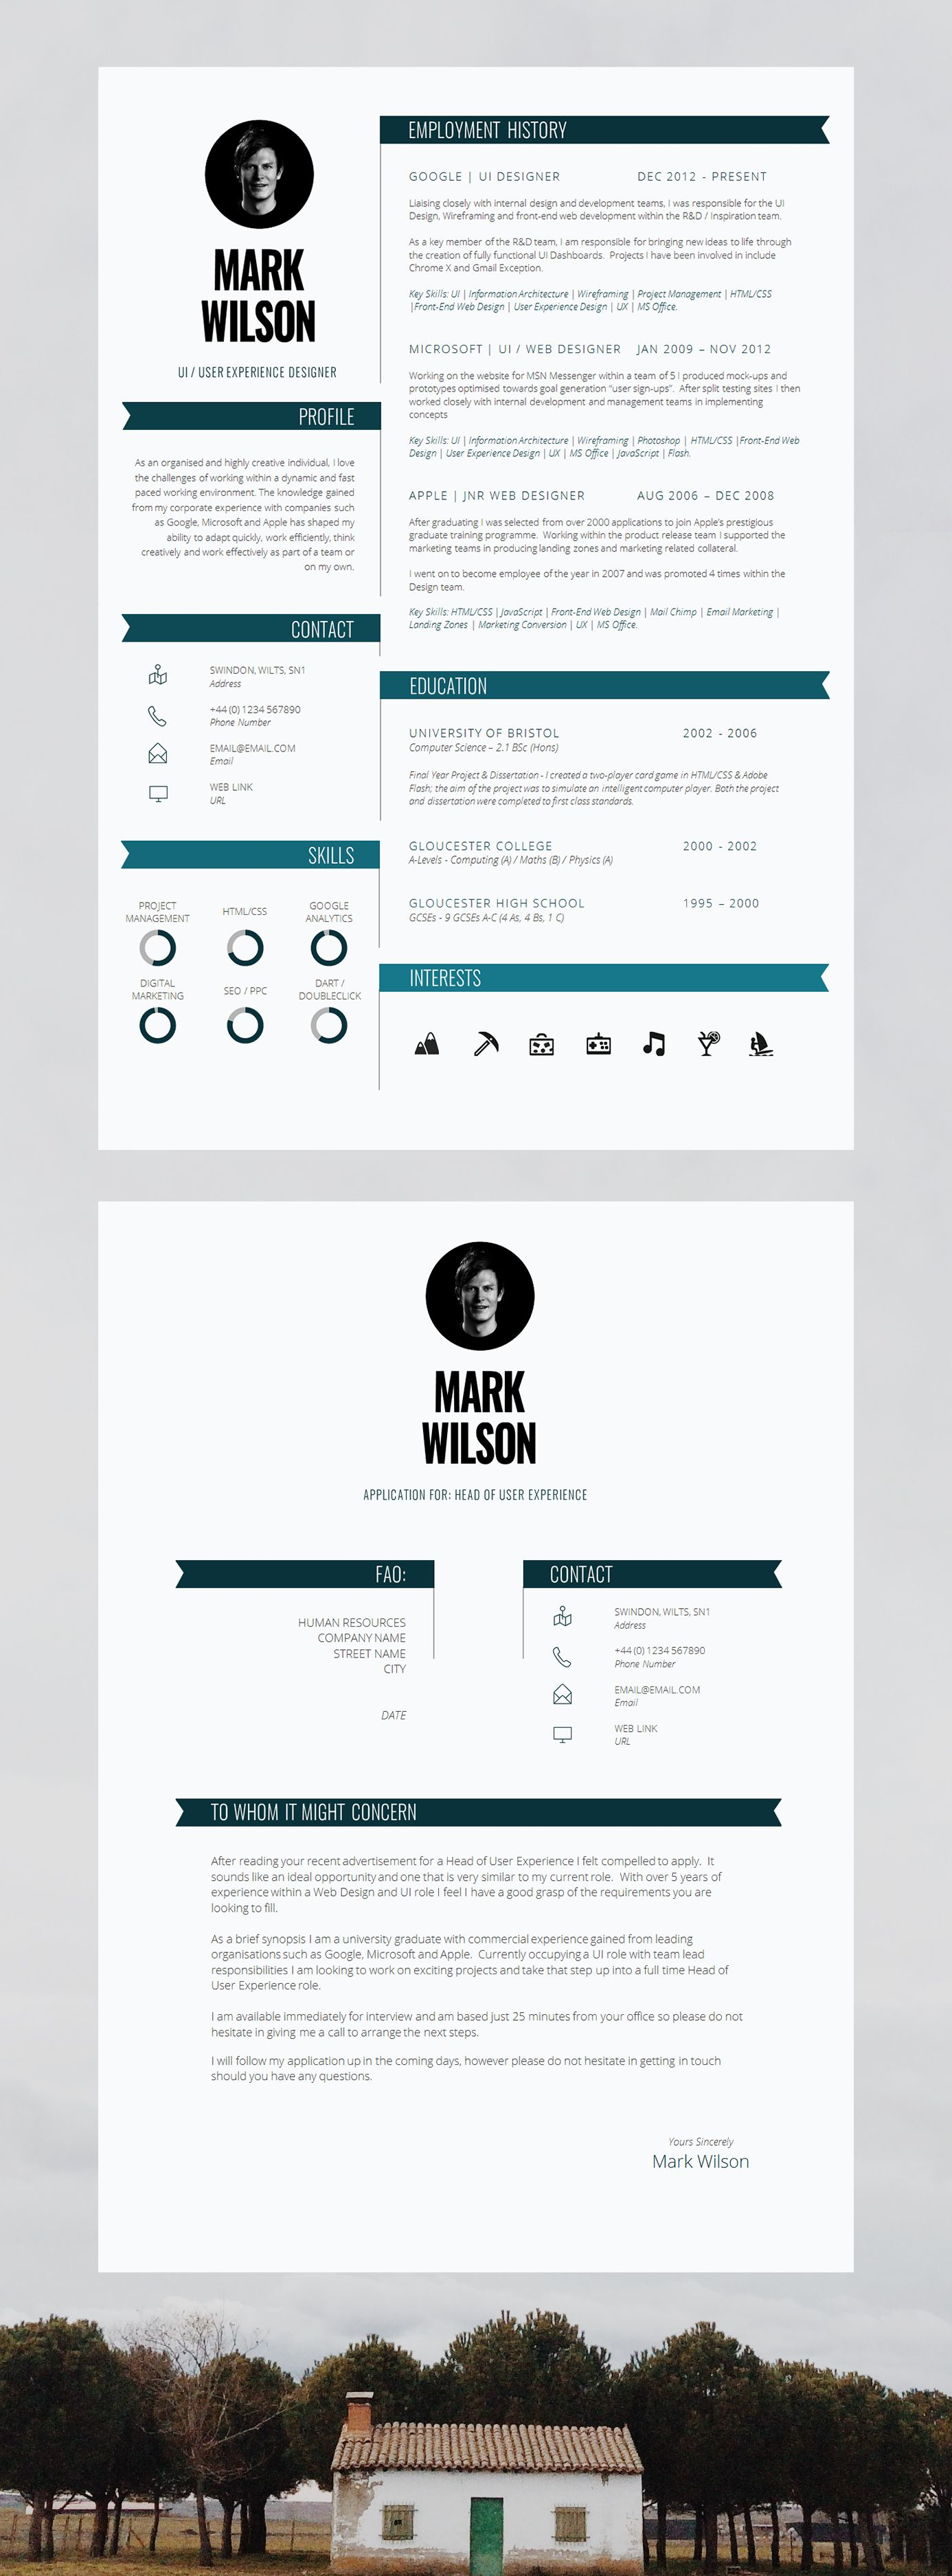 resume Resume Guide modern resume template cv design cover letter a guide and rolled up into one handy download